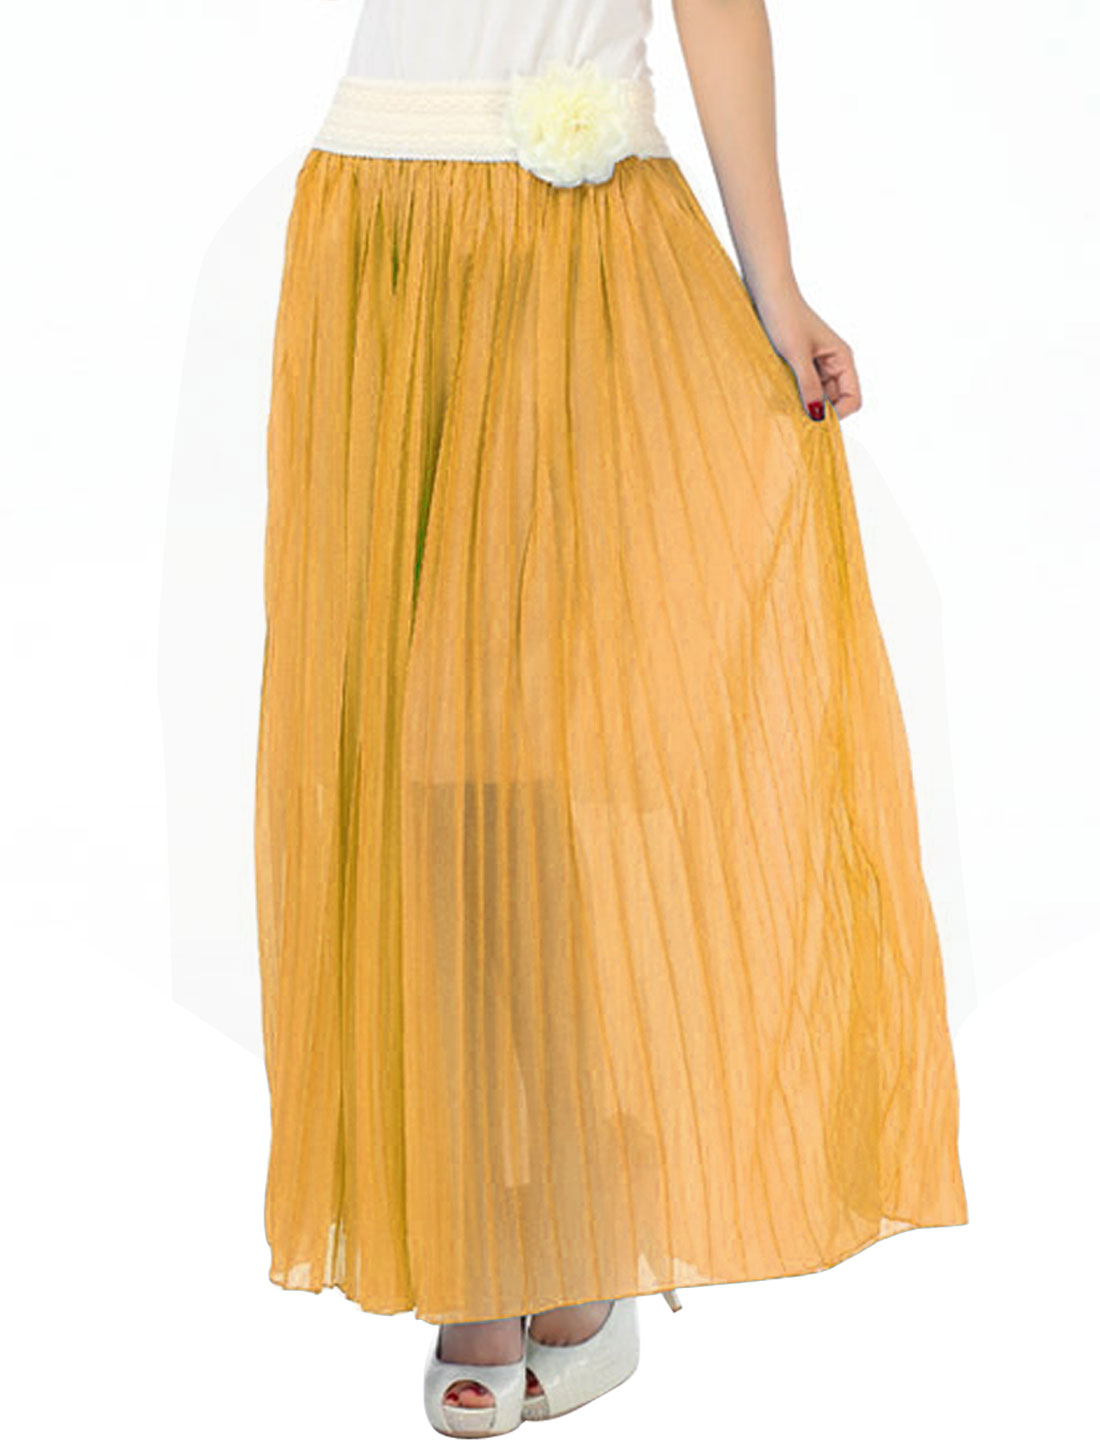 Lady Leisure Removable Flower Decor Lining Skirt Dark Yellow S